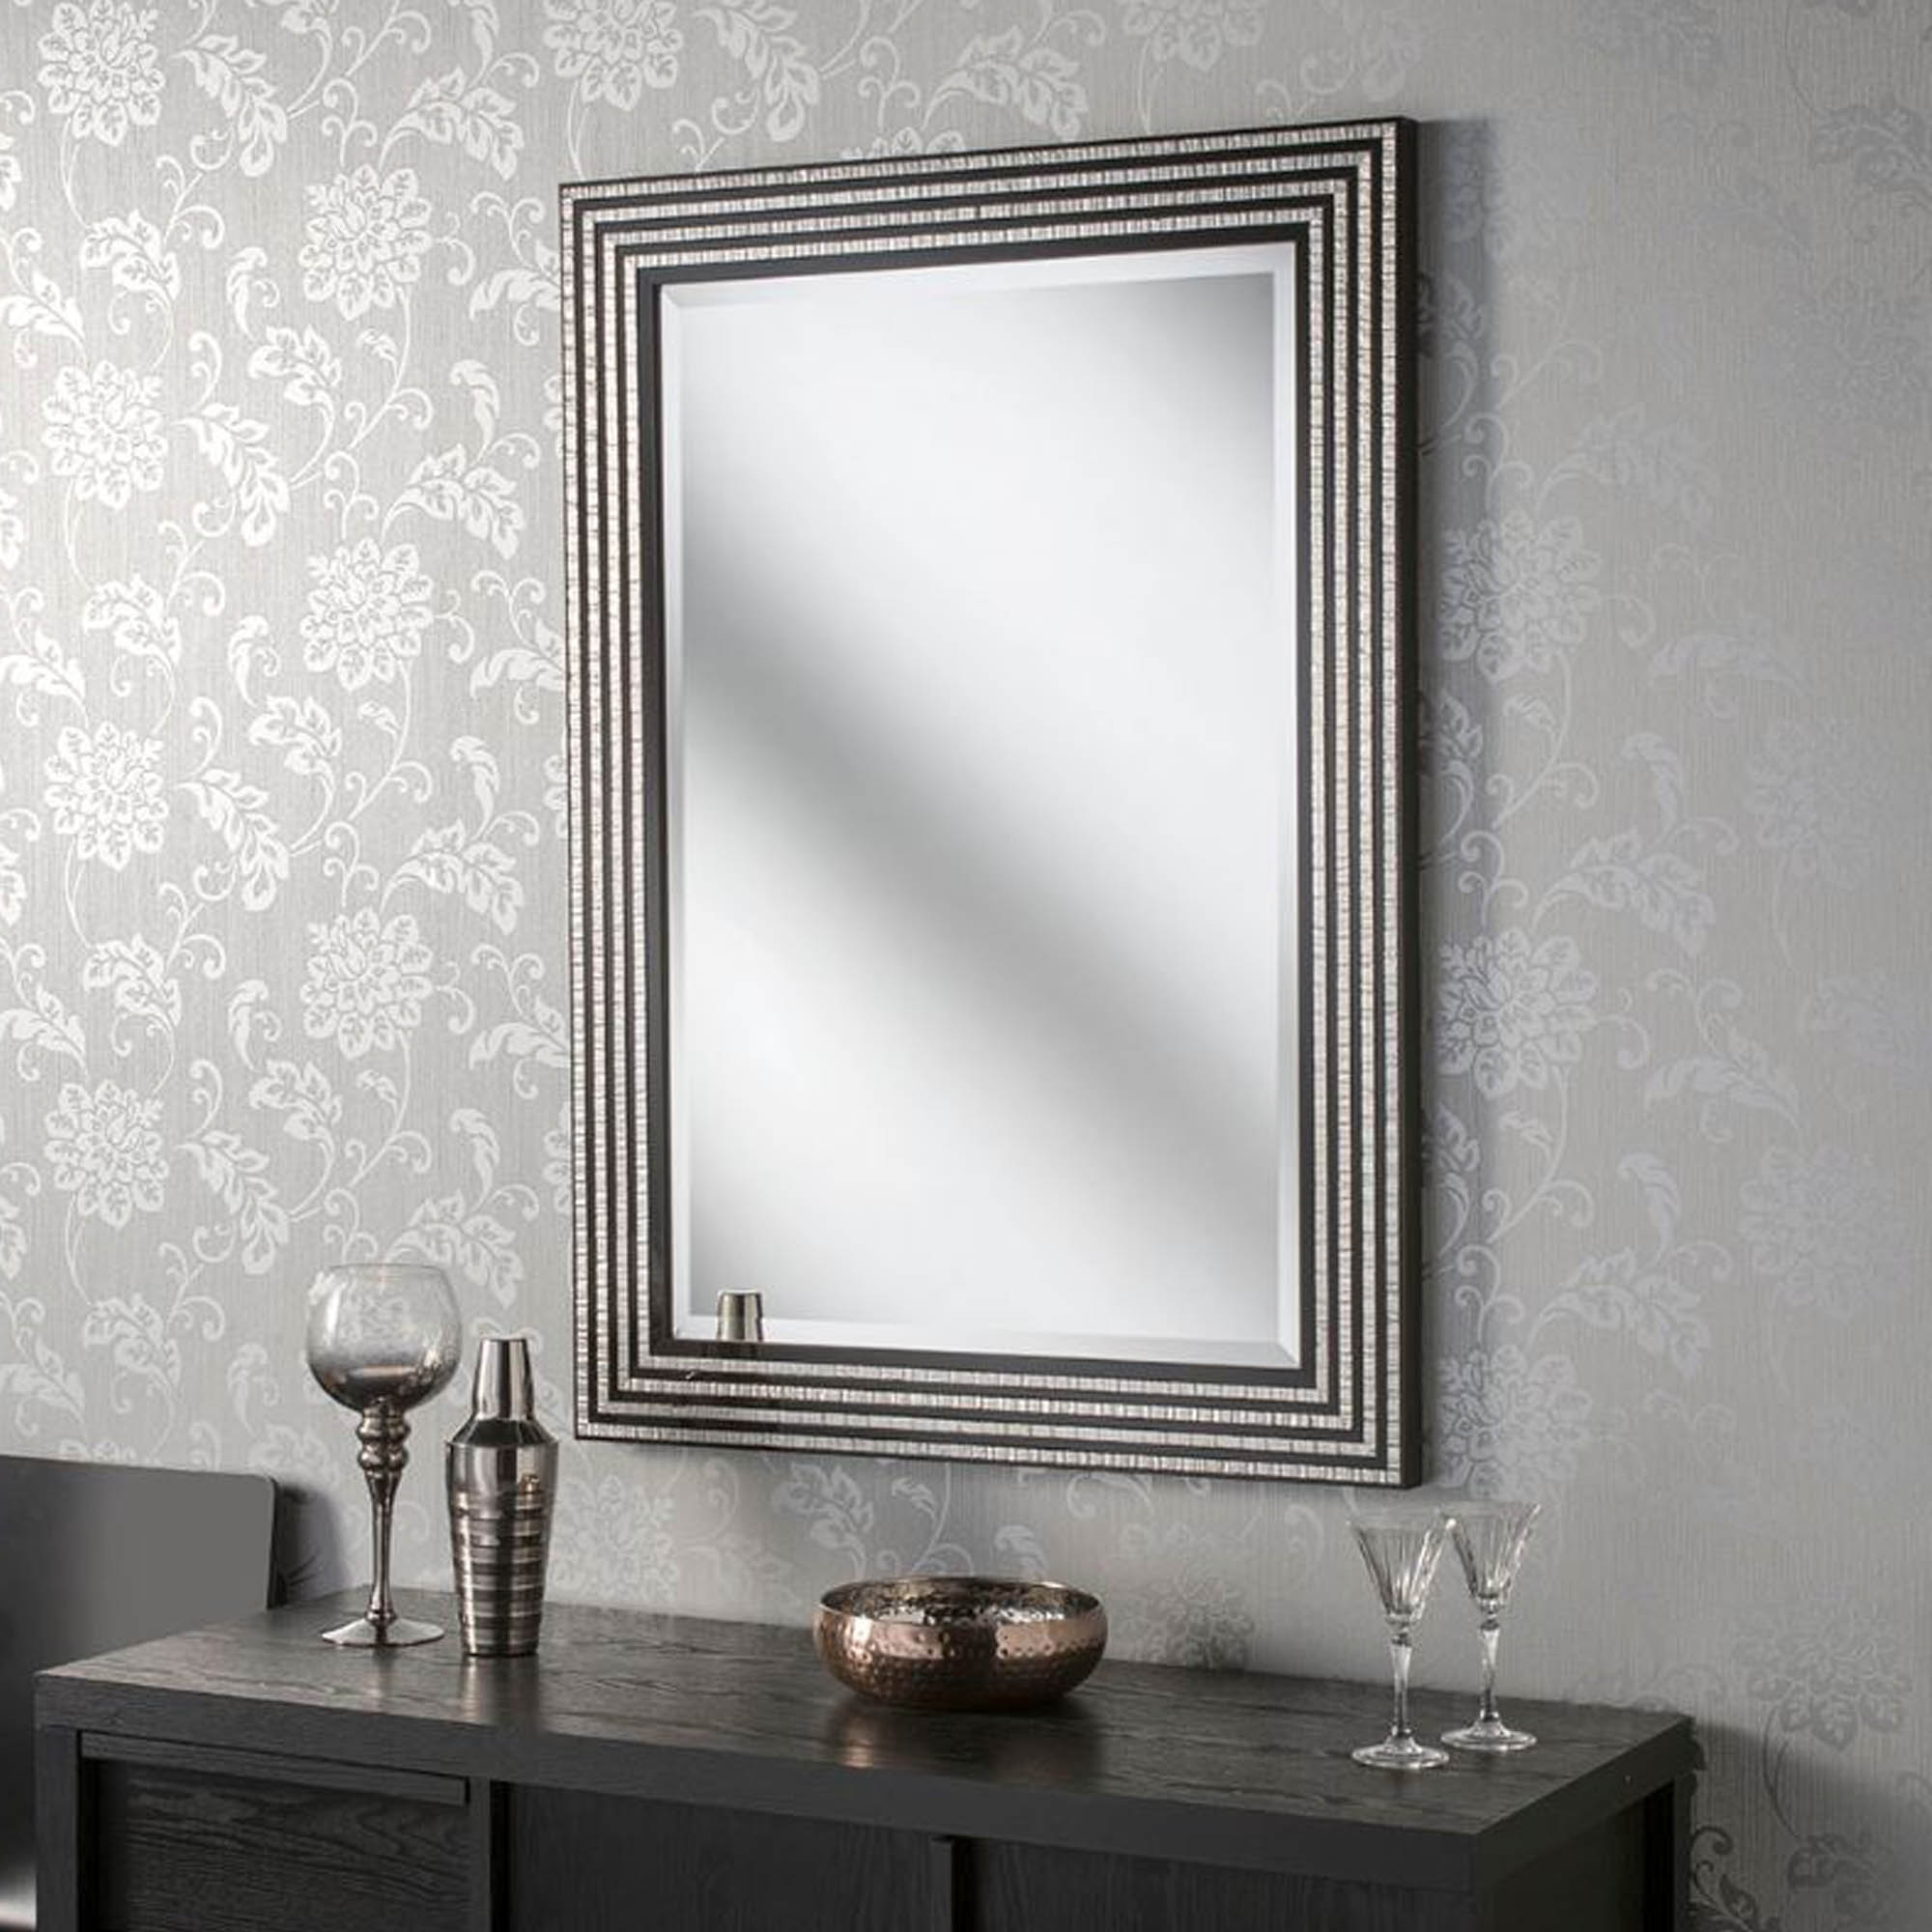 Black And Silver Wall Mirrors With Regard To Widely Used Black And Silver Line Rectangular Wall Mirror (View 12 of 20)